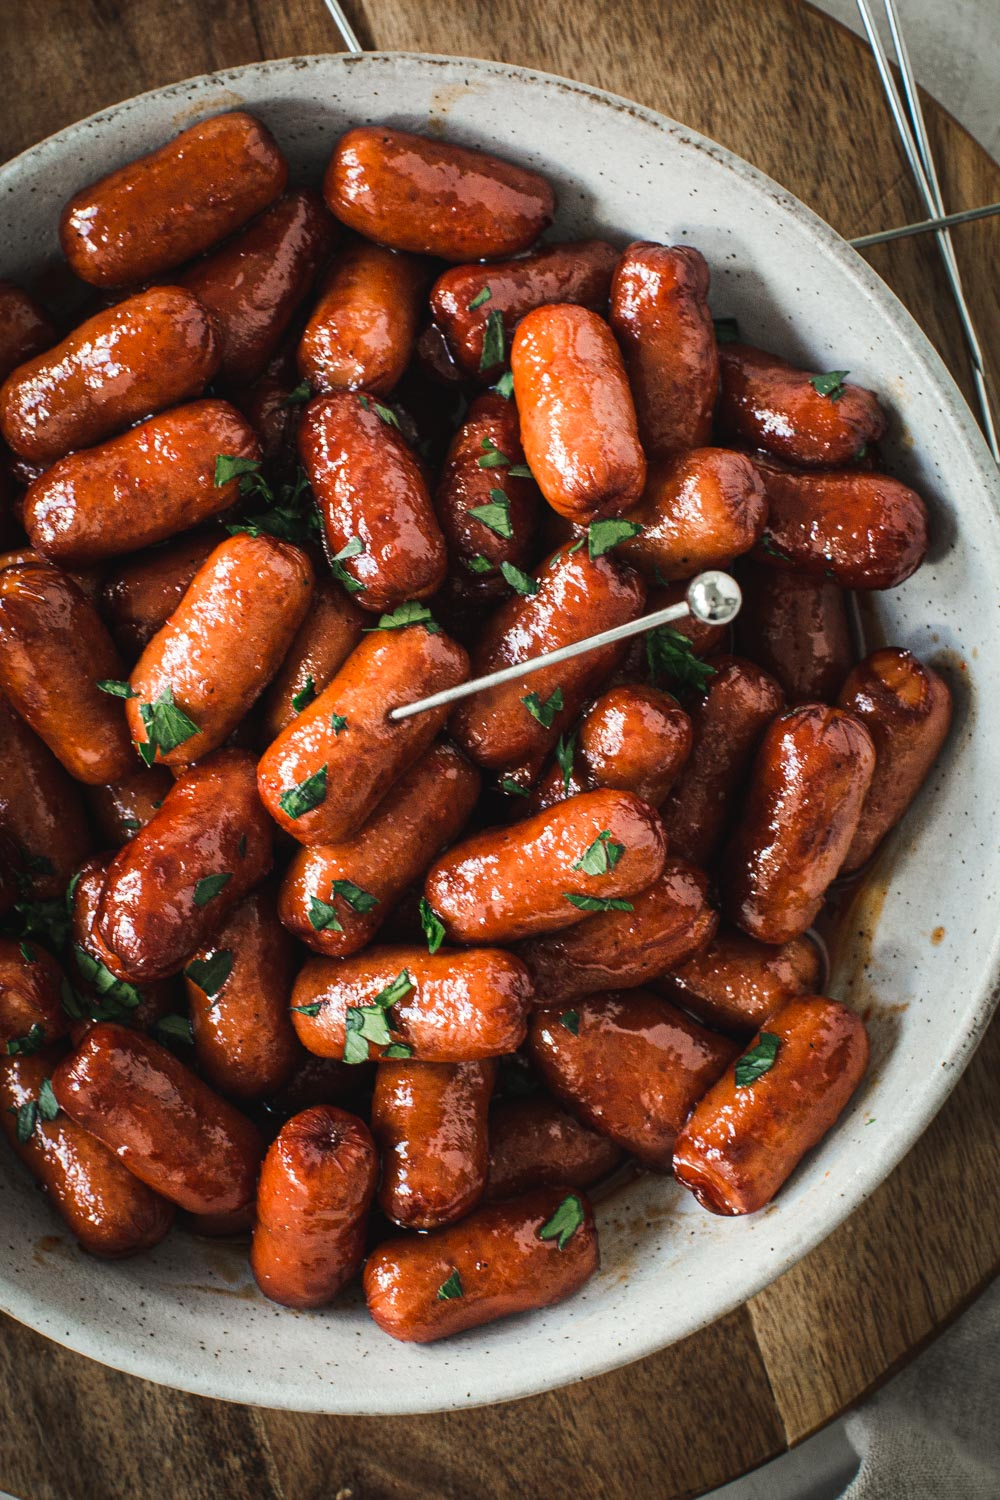 Honey sriracha Little Smokies topped with chopped cilantro in a white bowl.